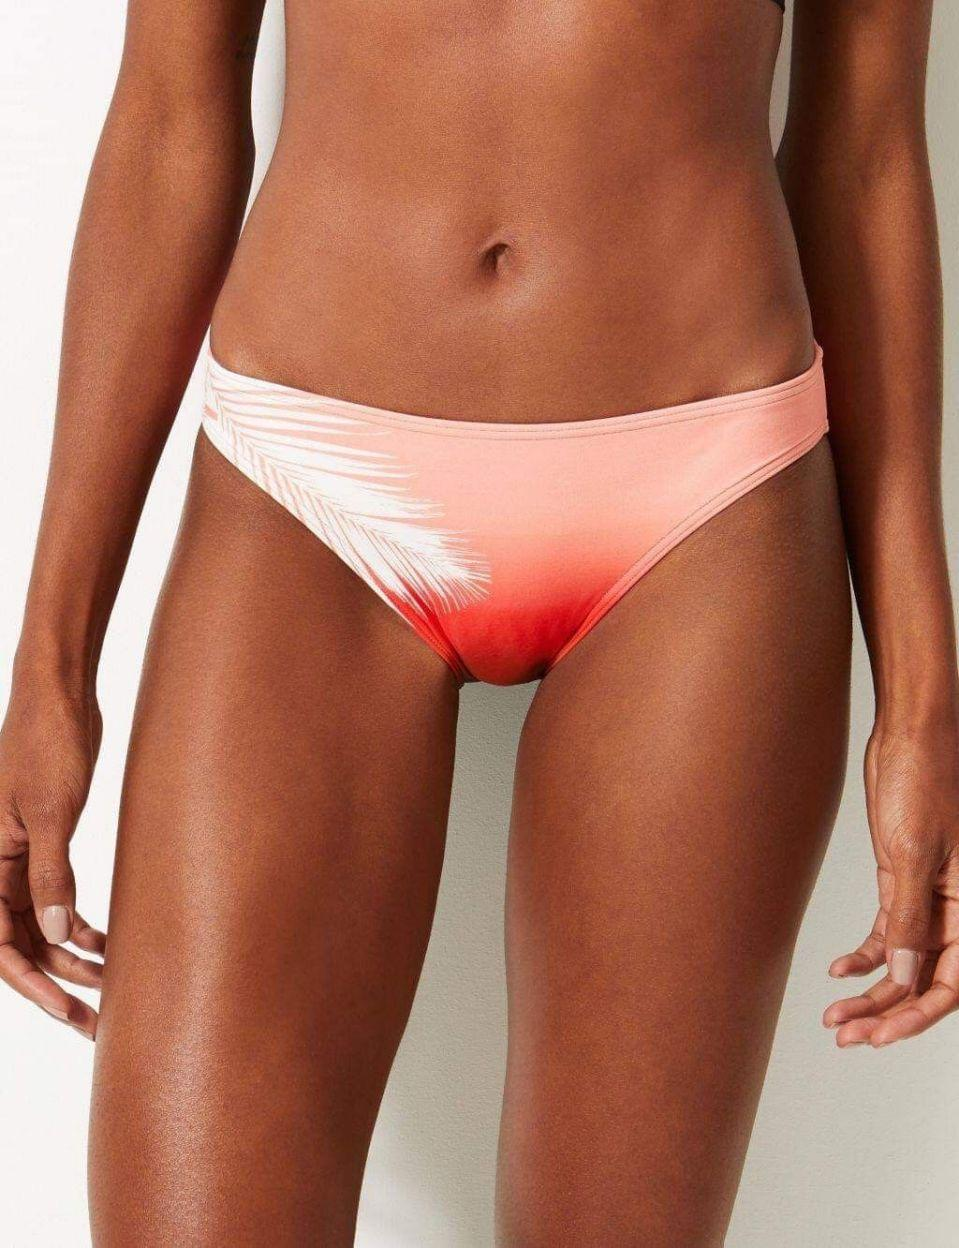 Marks & Spencer swimmer bottoms ombre colour looks like period stain